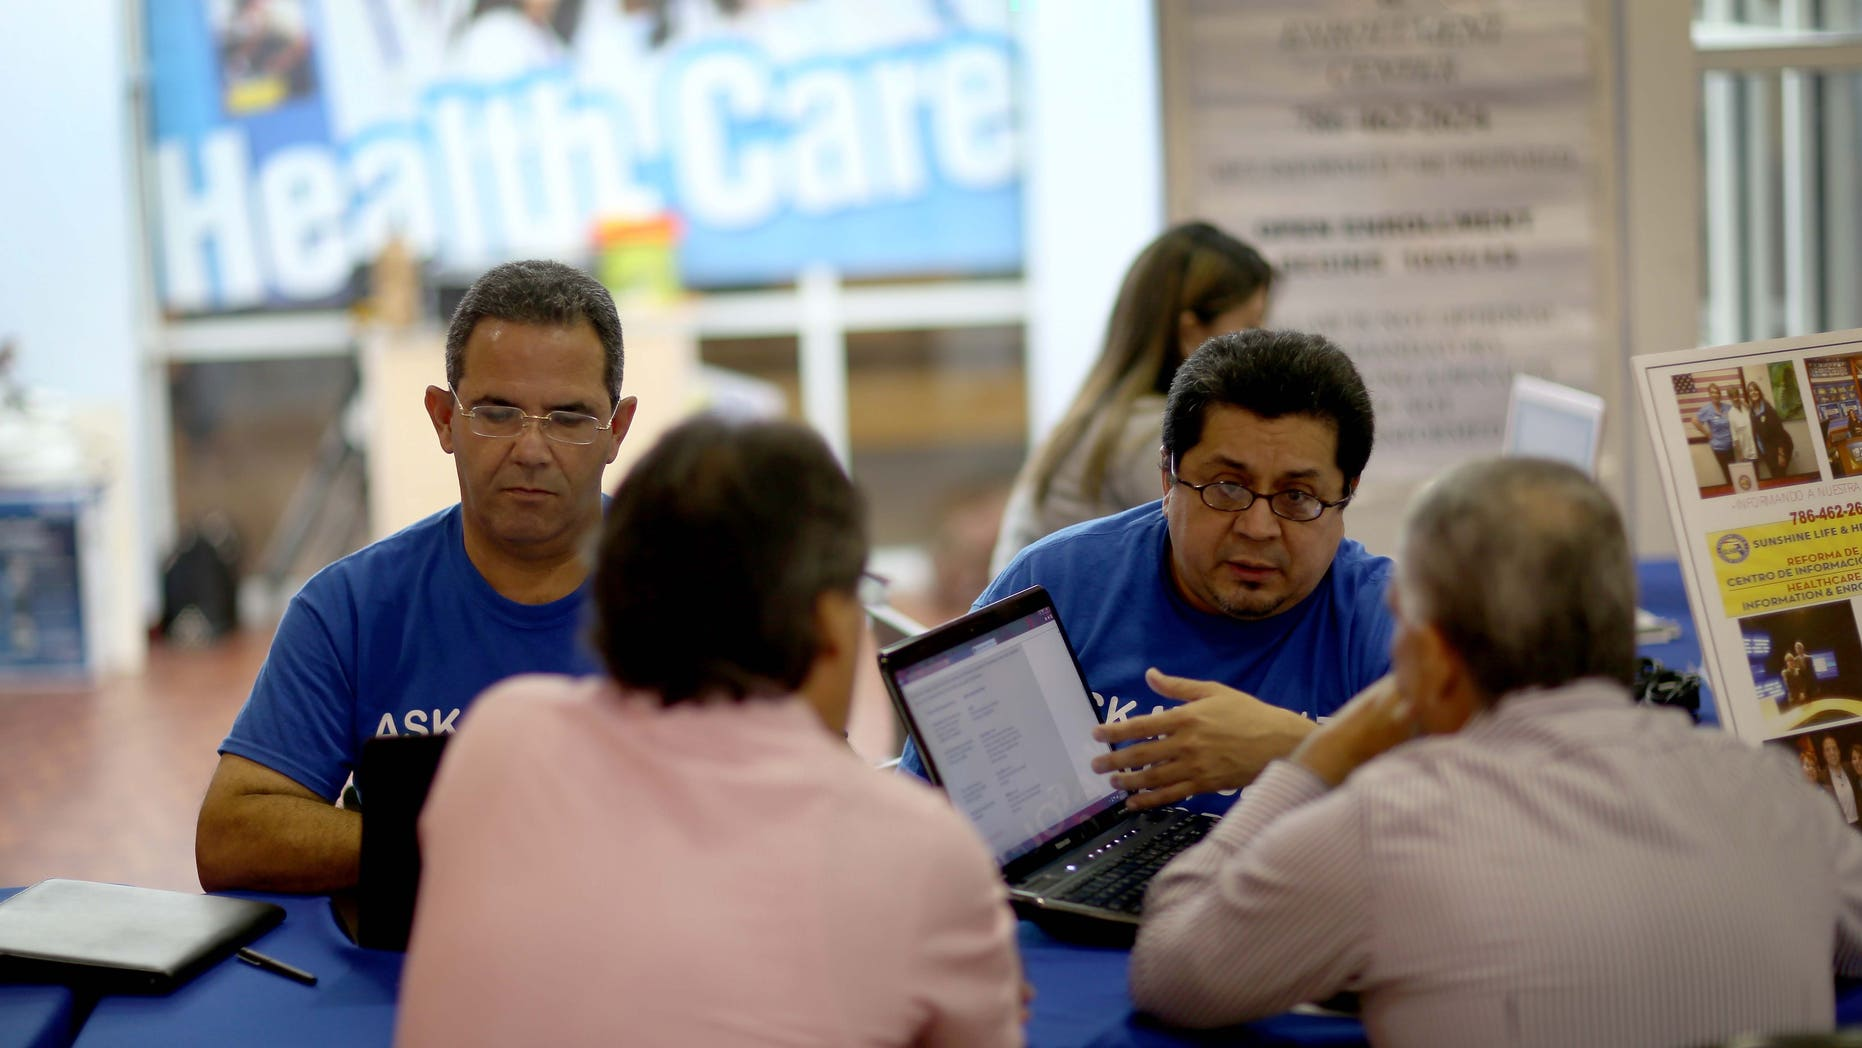 Insurance agents help people with the Affordable Care Act on November 5, 2013 in Miami, Florida.